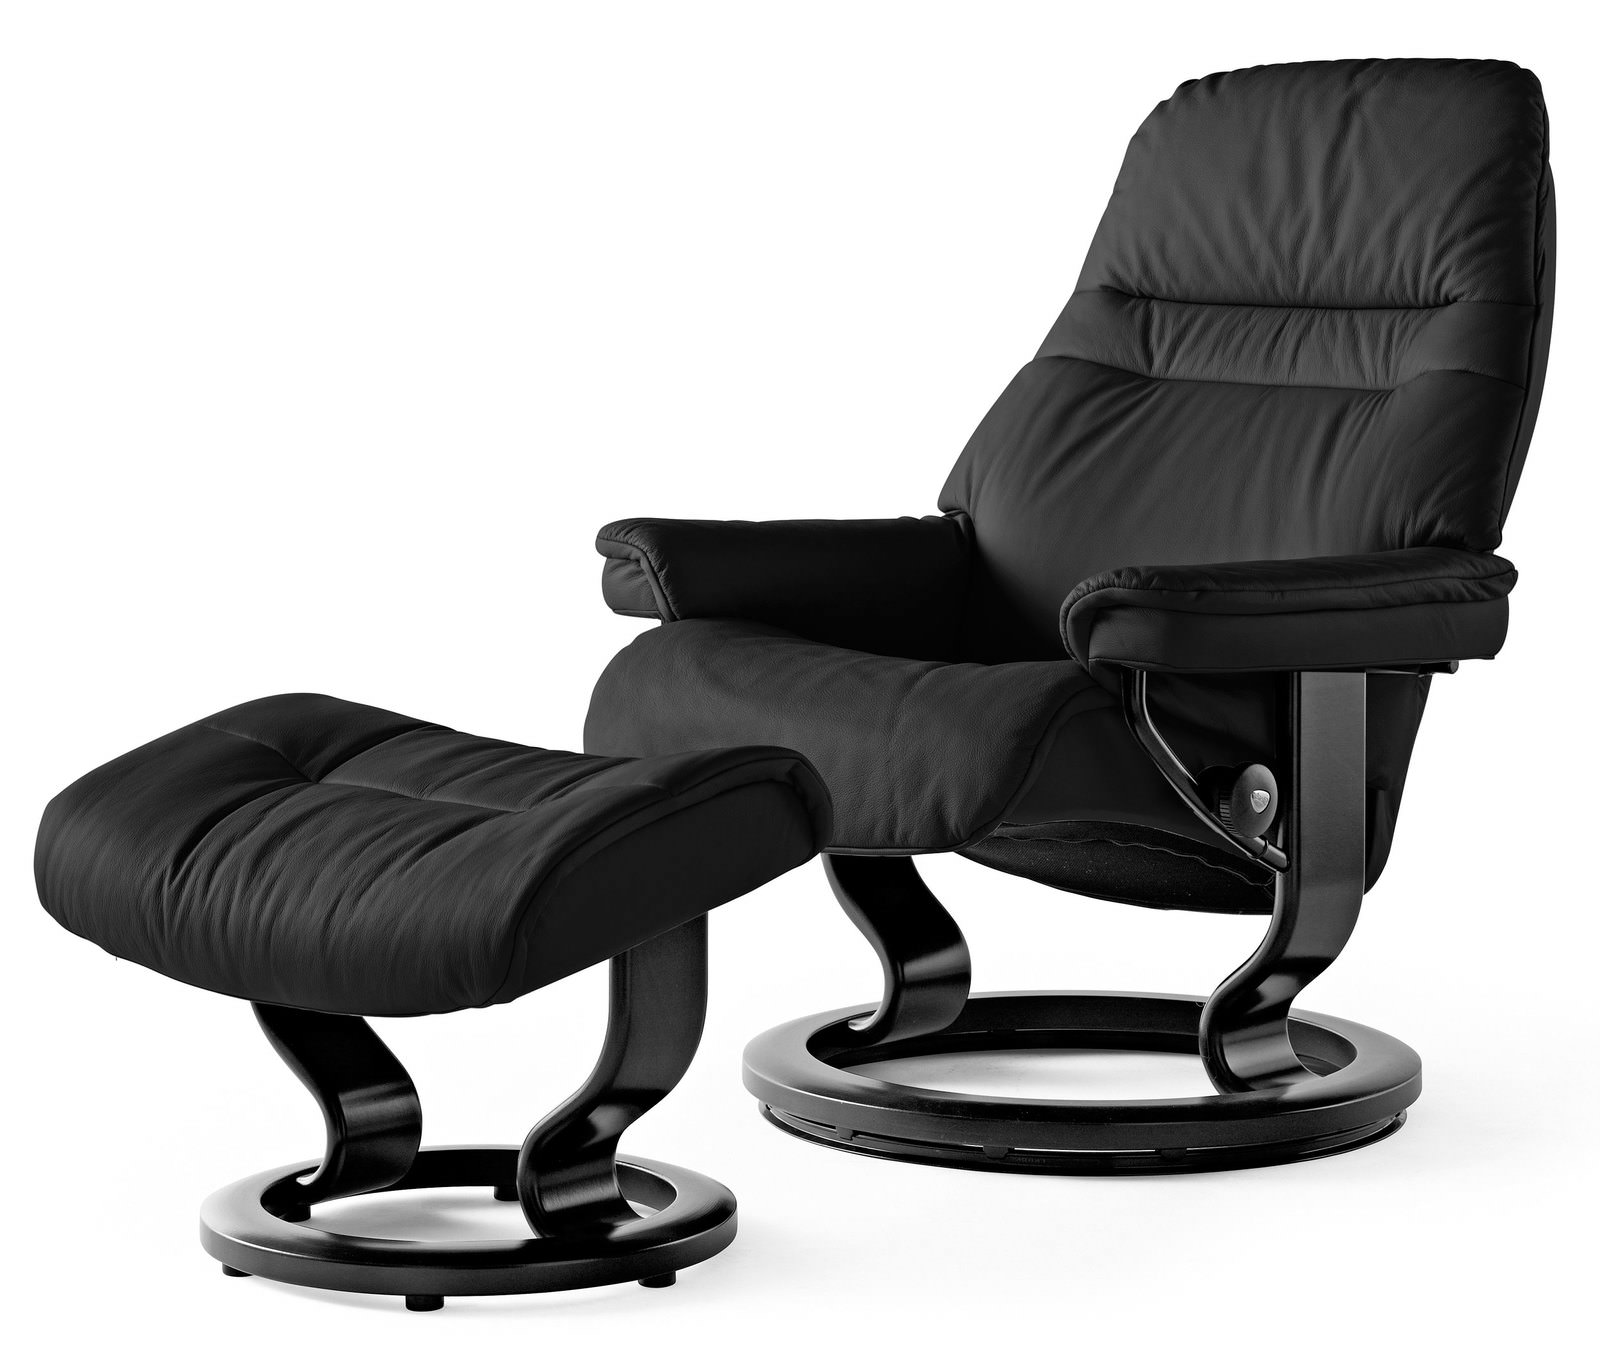 Sessel Stressless Preise Stressless Sessel Alternative Stressless Onlineshop